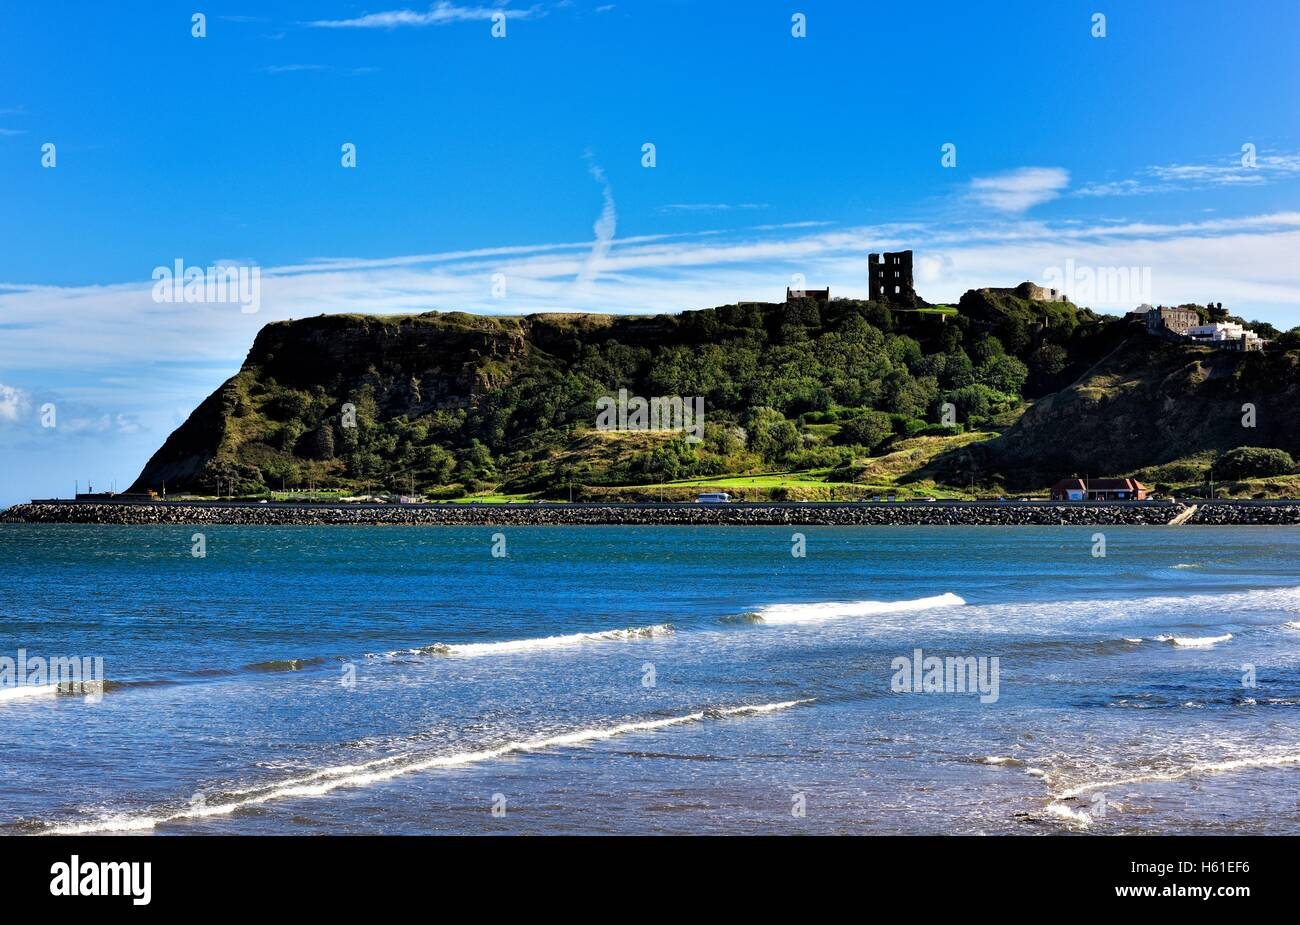 Scarborough North Bay with the castle in the distance,North Yorkshire,England UK - Stock Image